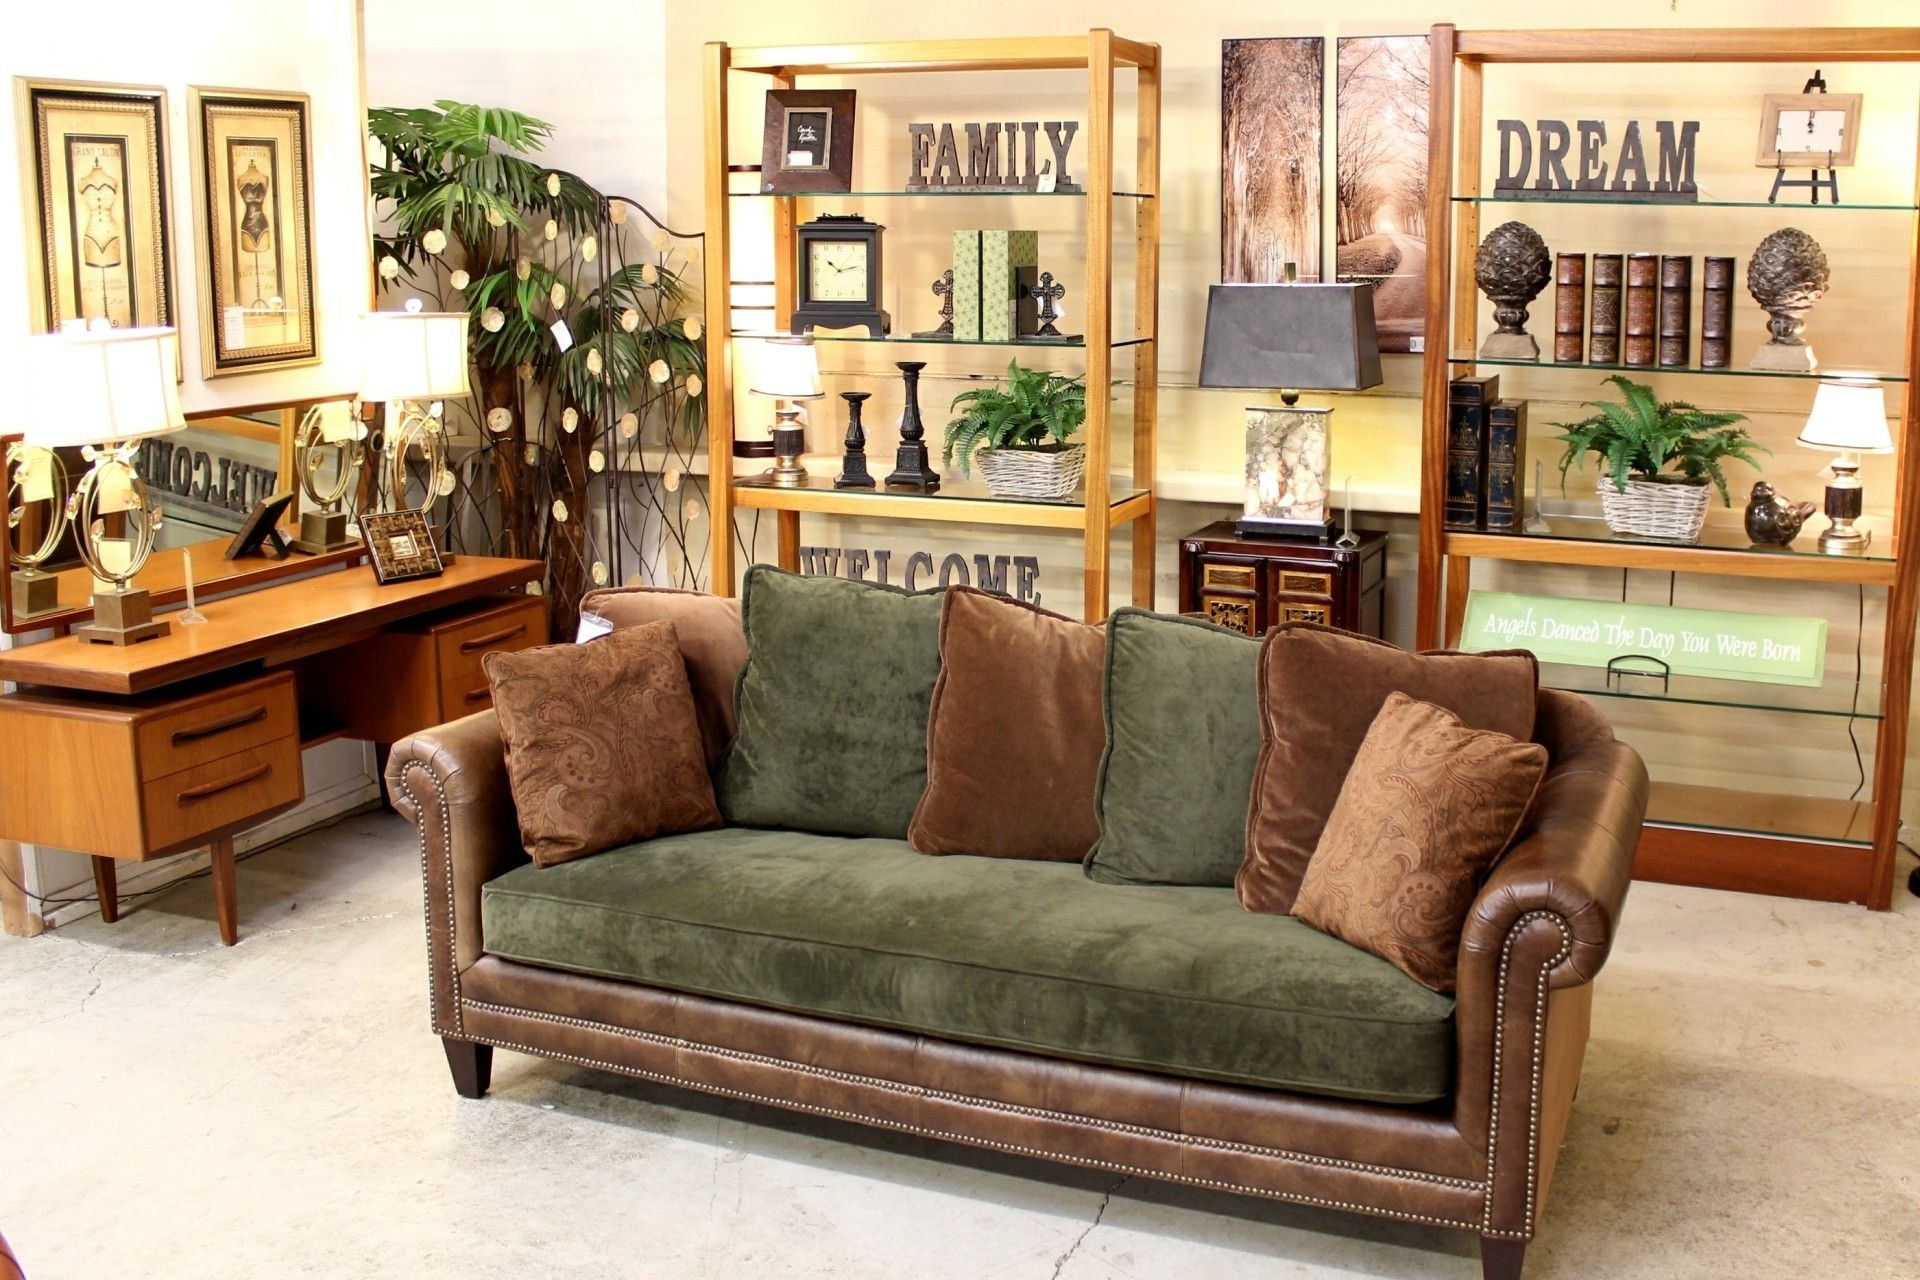 Upscale Consignment | Upscale Used Furniture & Decor in ...